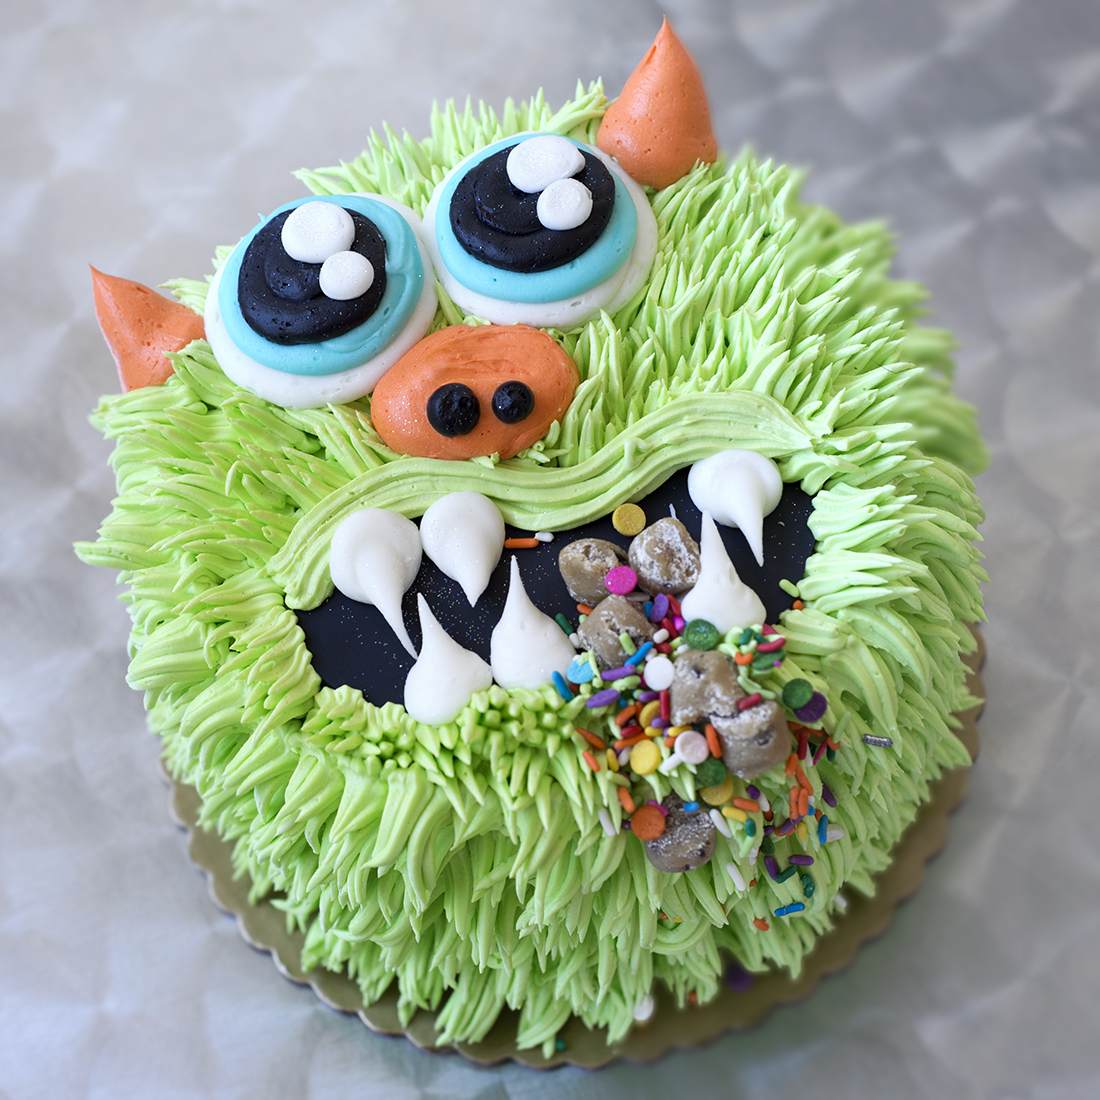 "Monster - Pick two colors to highlight. Fondant plaque included6""-$55, 9""-$95, 10""-$130, 12""-$180, Small Sheet-n/a, Large sheet: n/a"